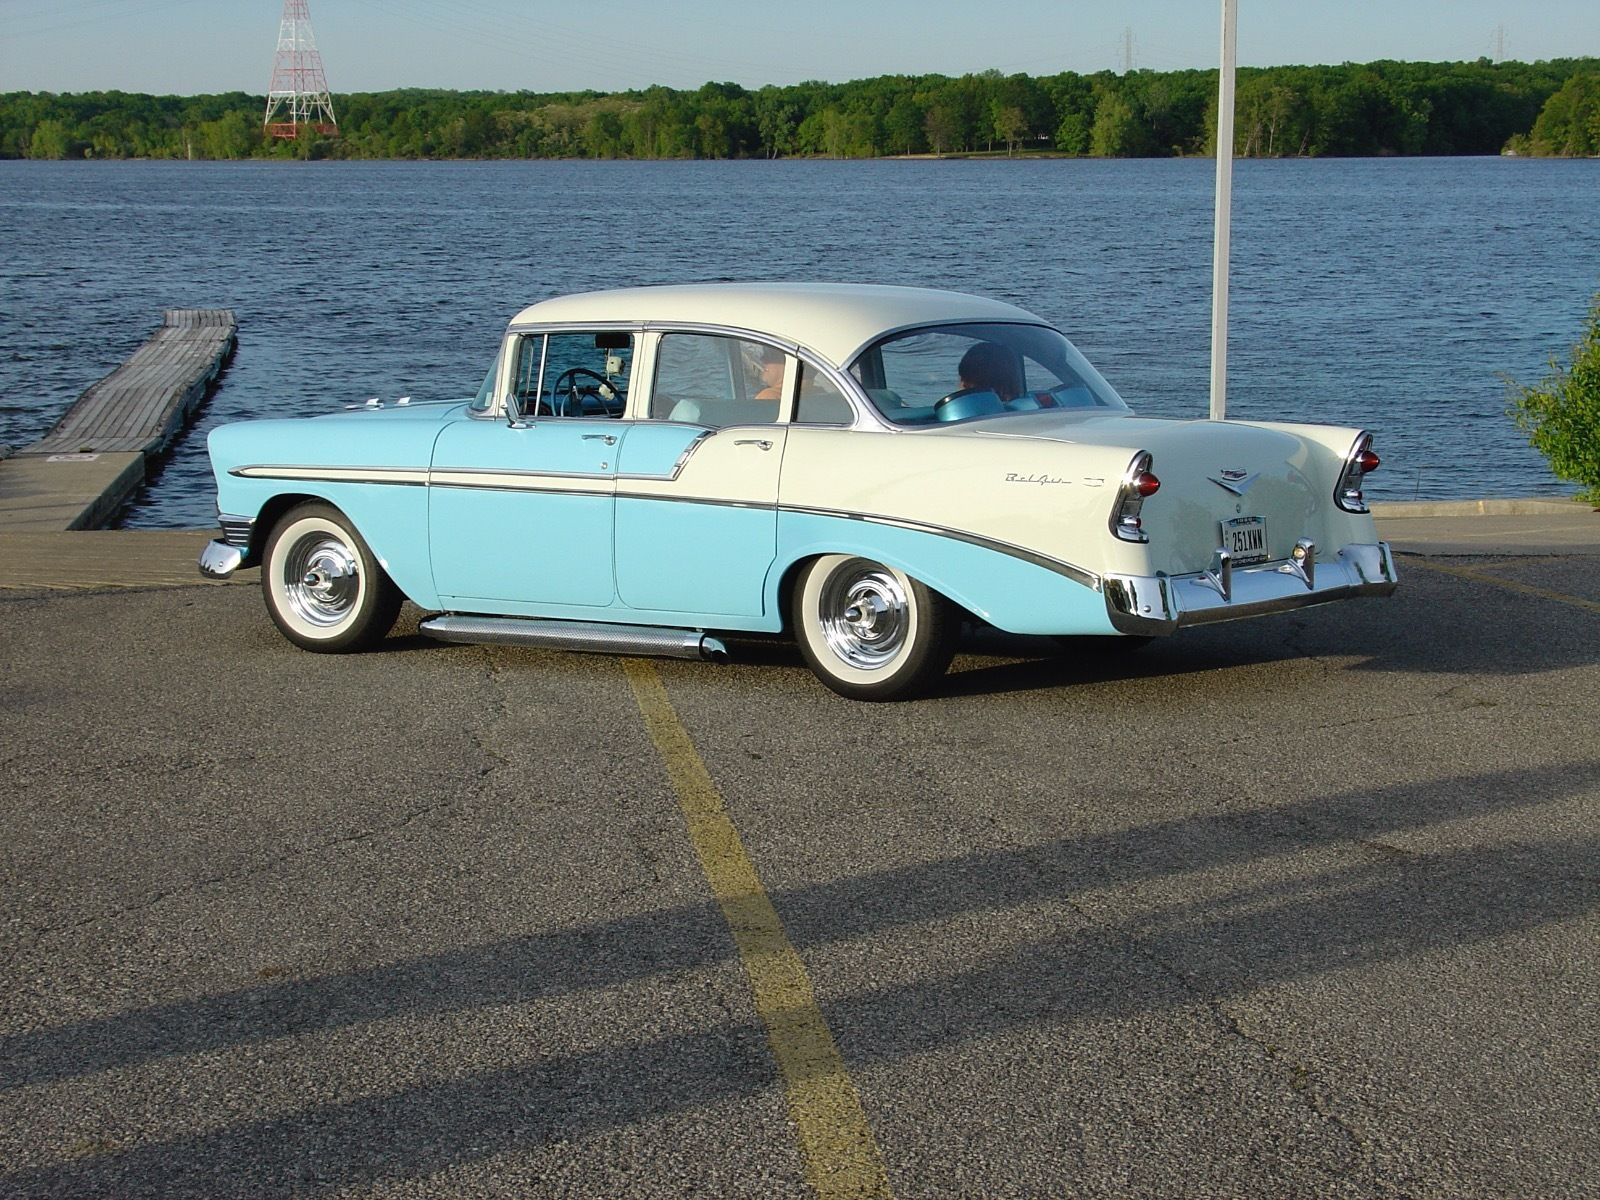 1956 Chevrolet Bel Air 150 210 Belair Ebay With Images Chevrolet Bel Air Chevrolet Chevy